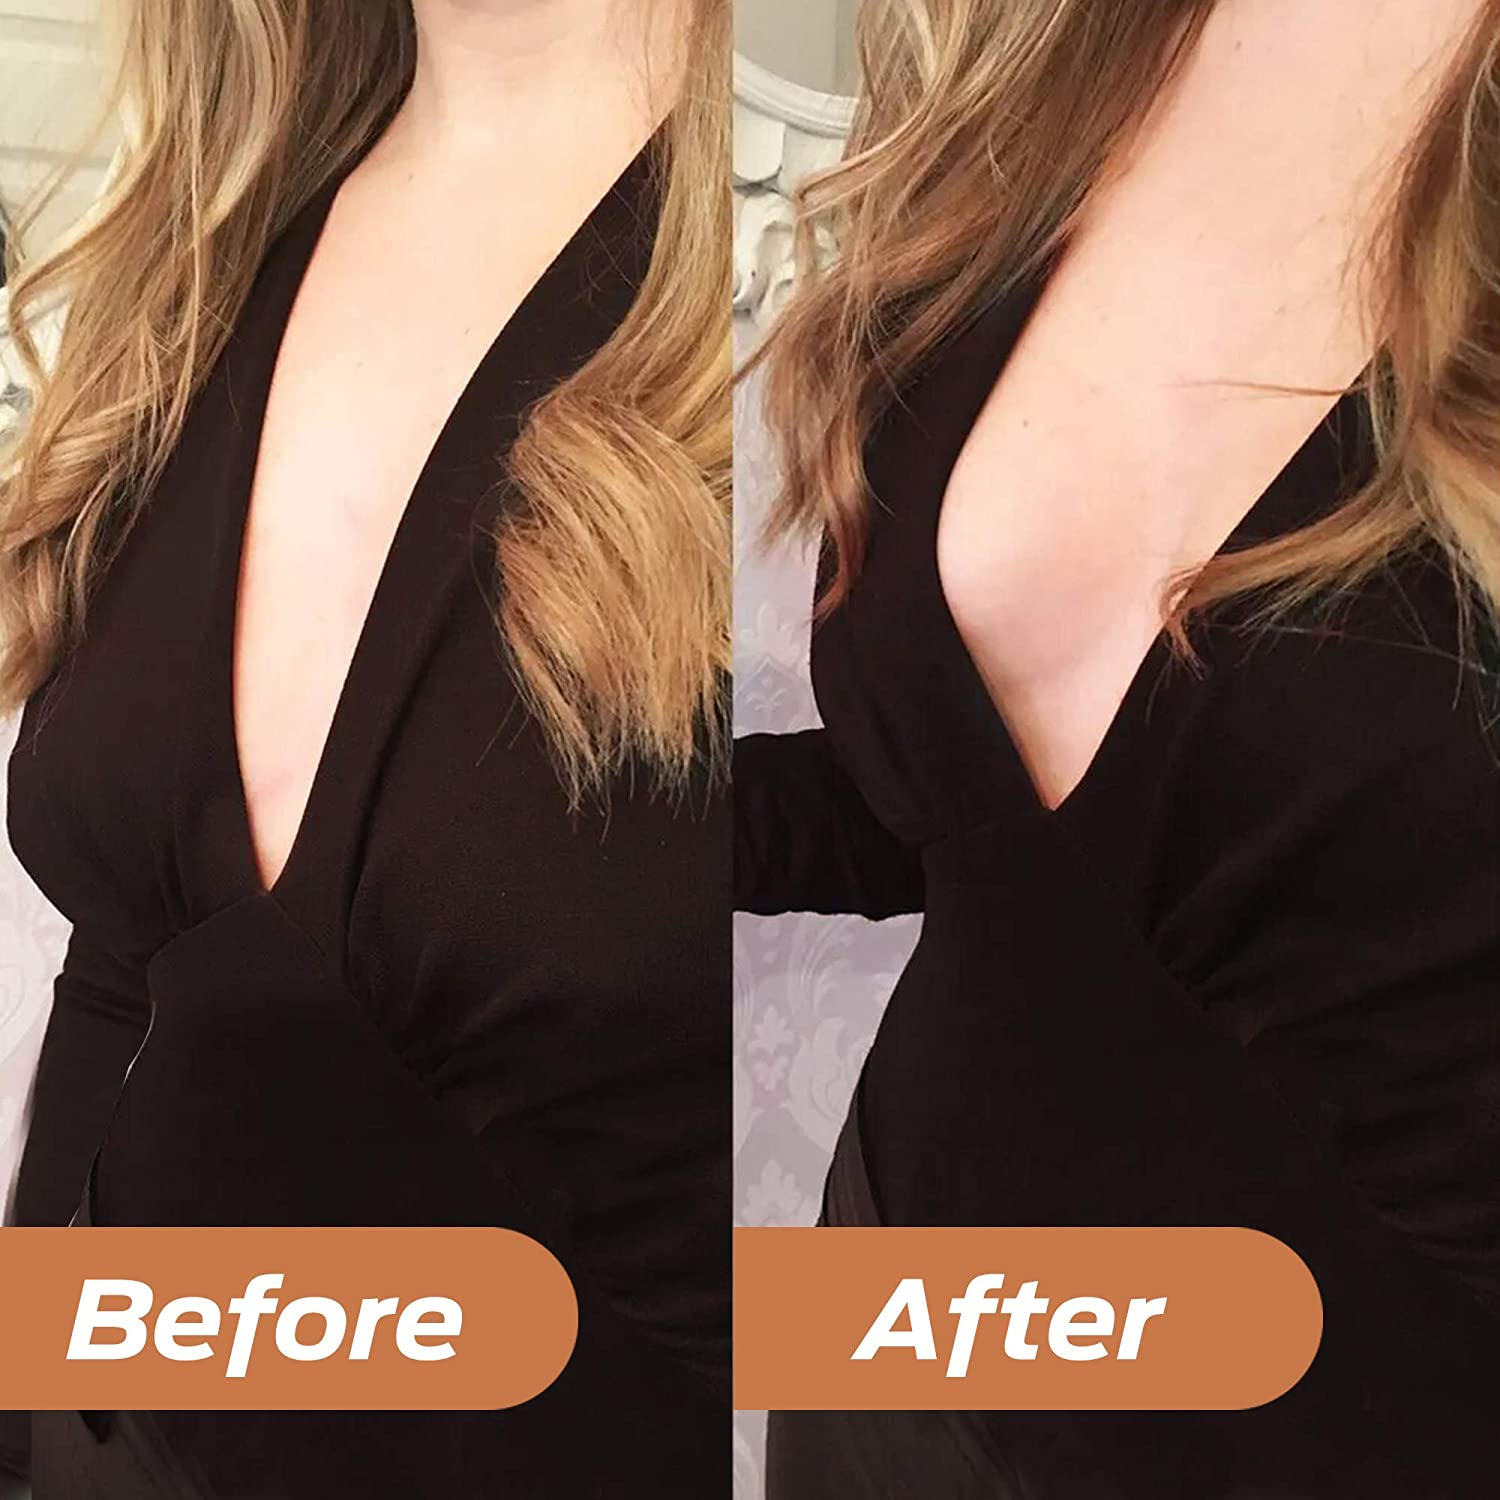 Adhesive Bras Breast Lift Tape Nipple Covers Strapless Invisible Bra for Women Push up Beige//Black,2 Pack